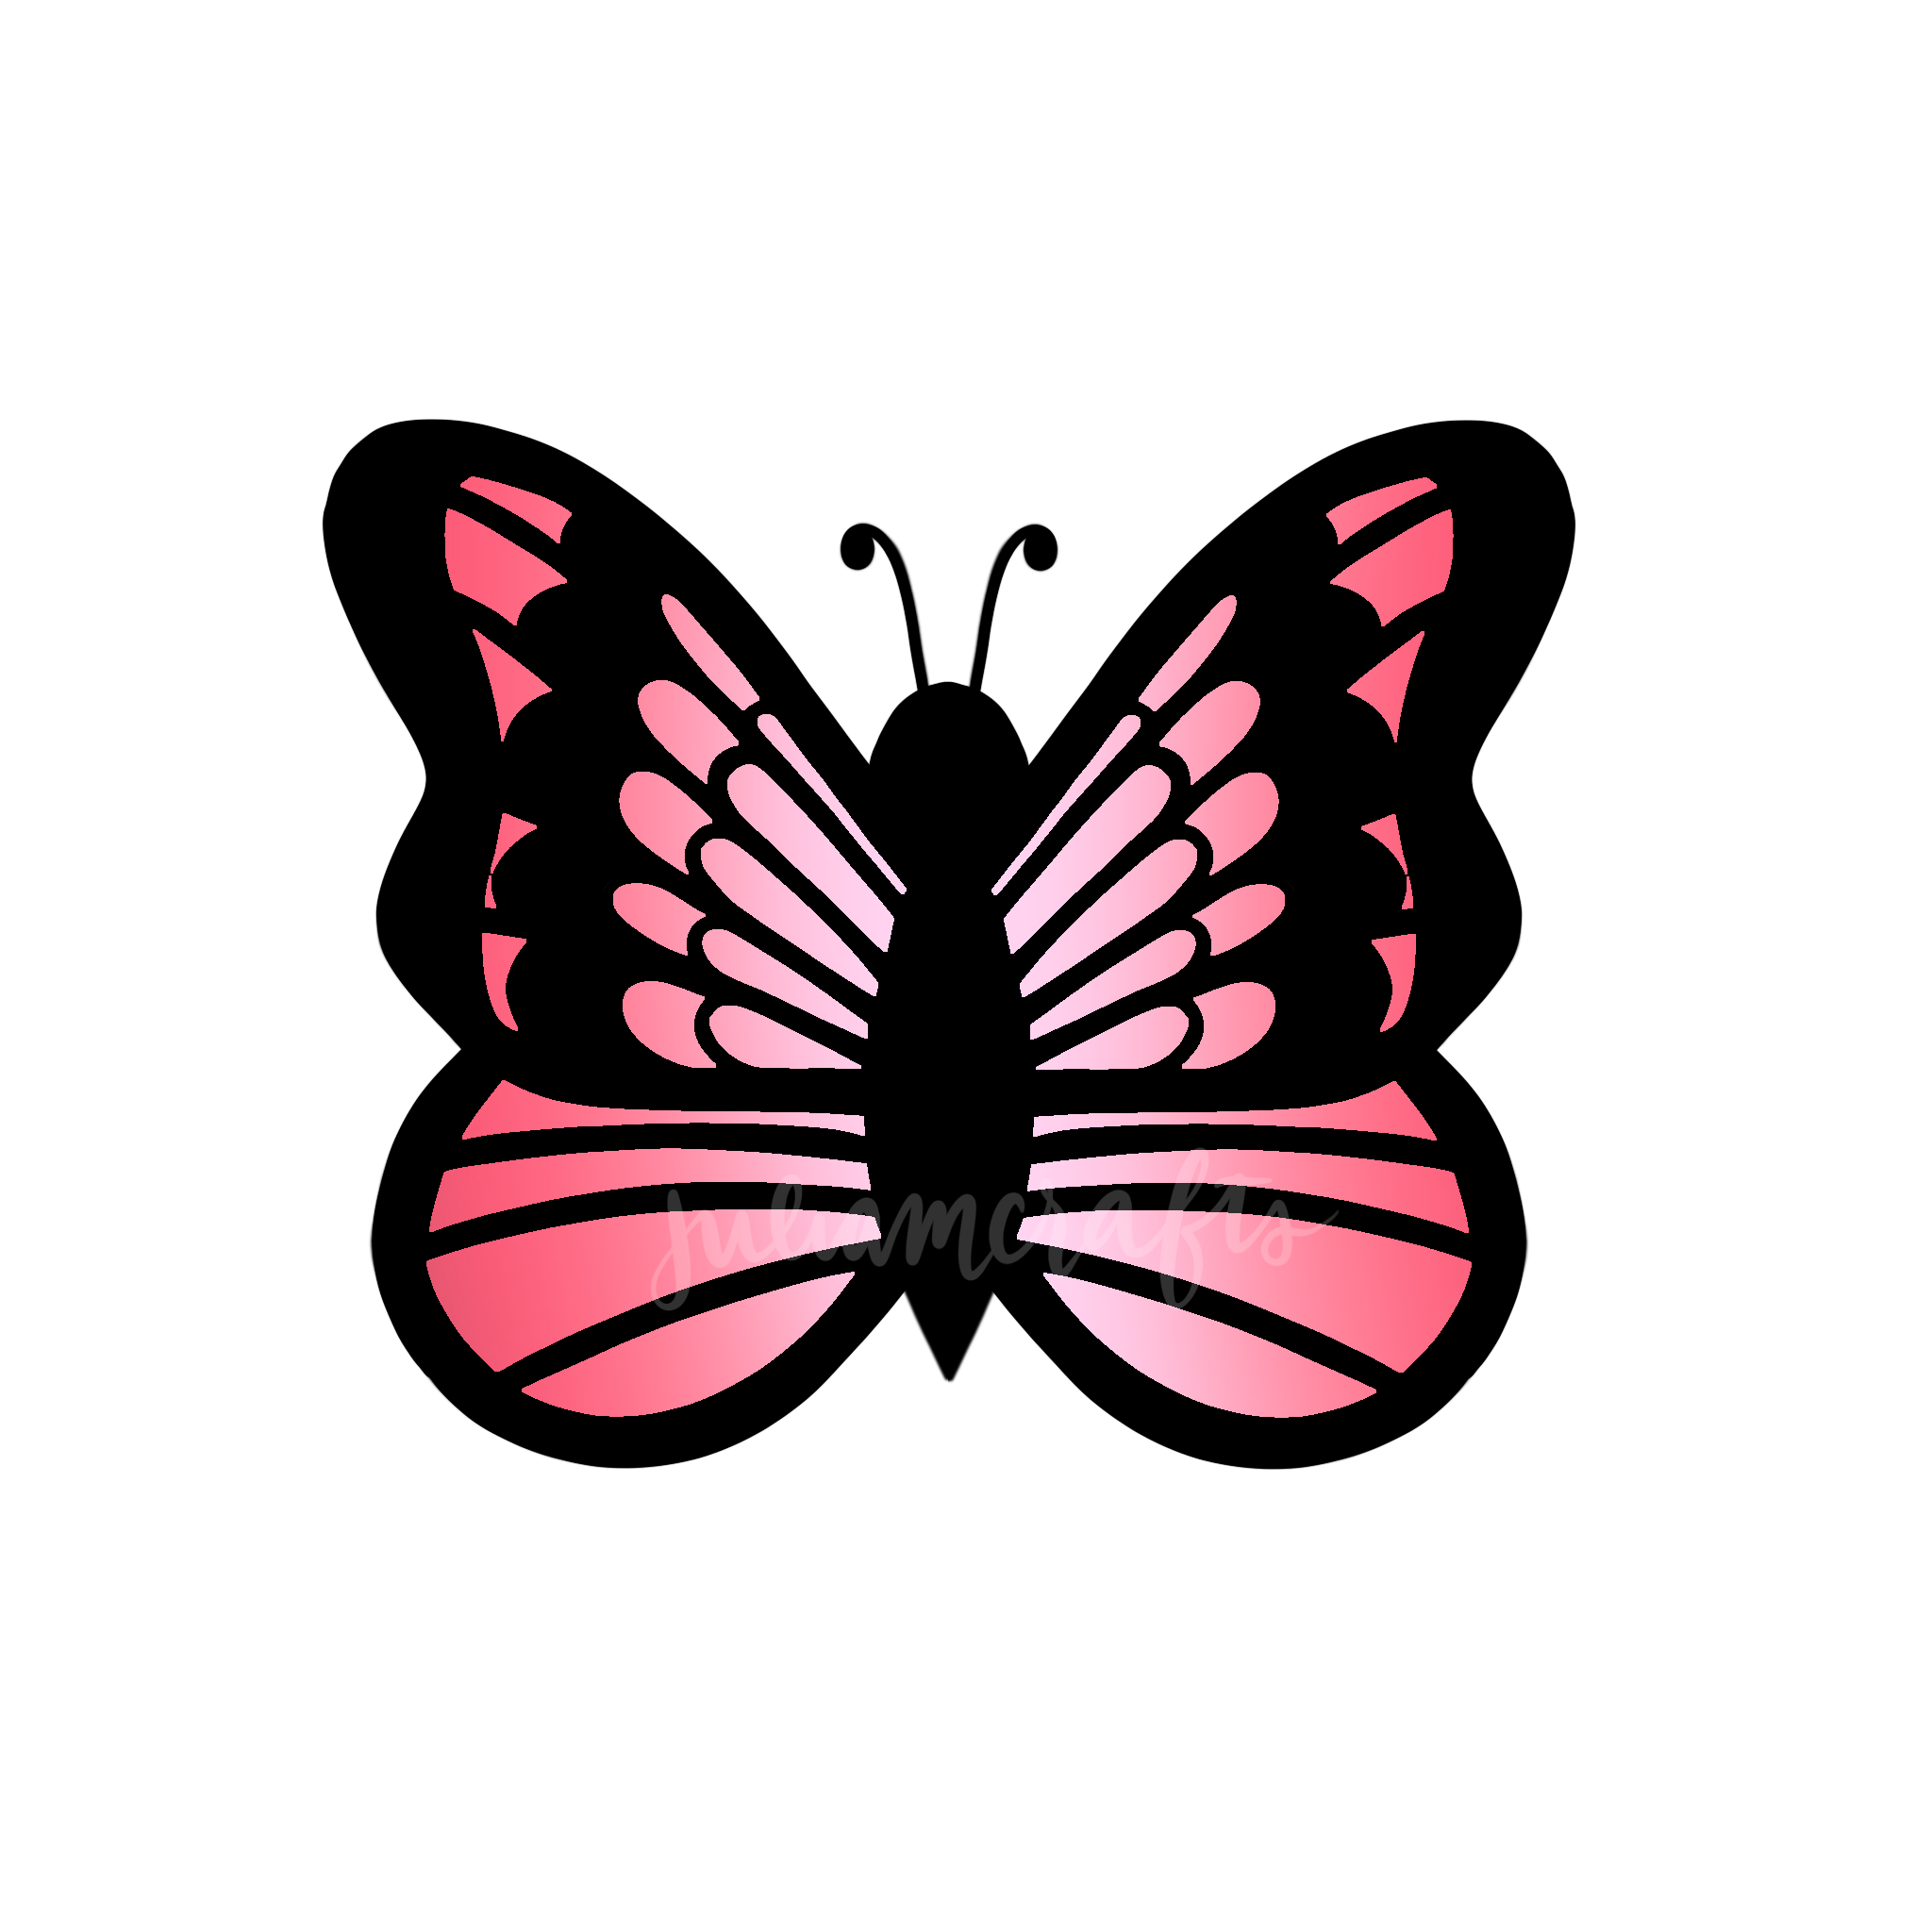 Pink Butterfly Design Green Butterfly Pink Butterfly Butterfly Design